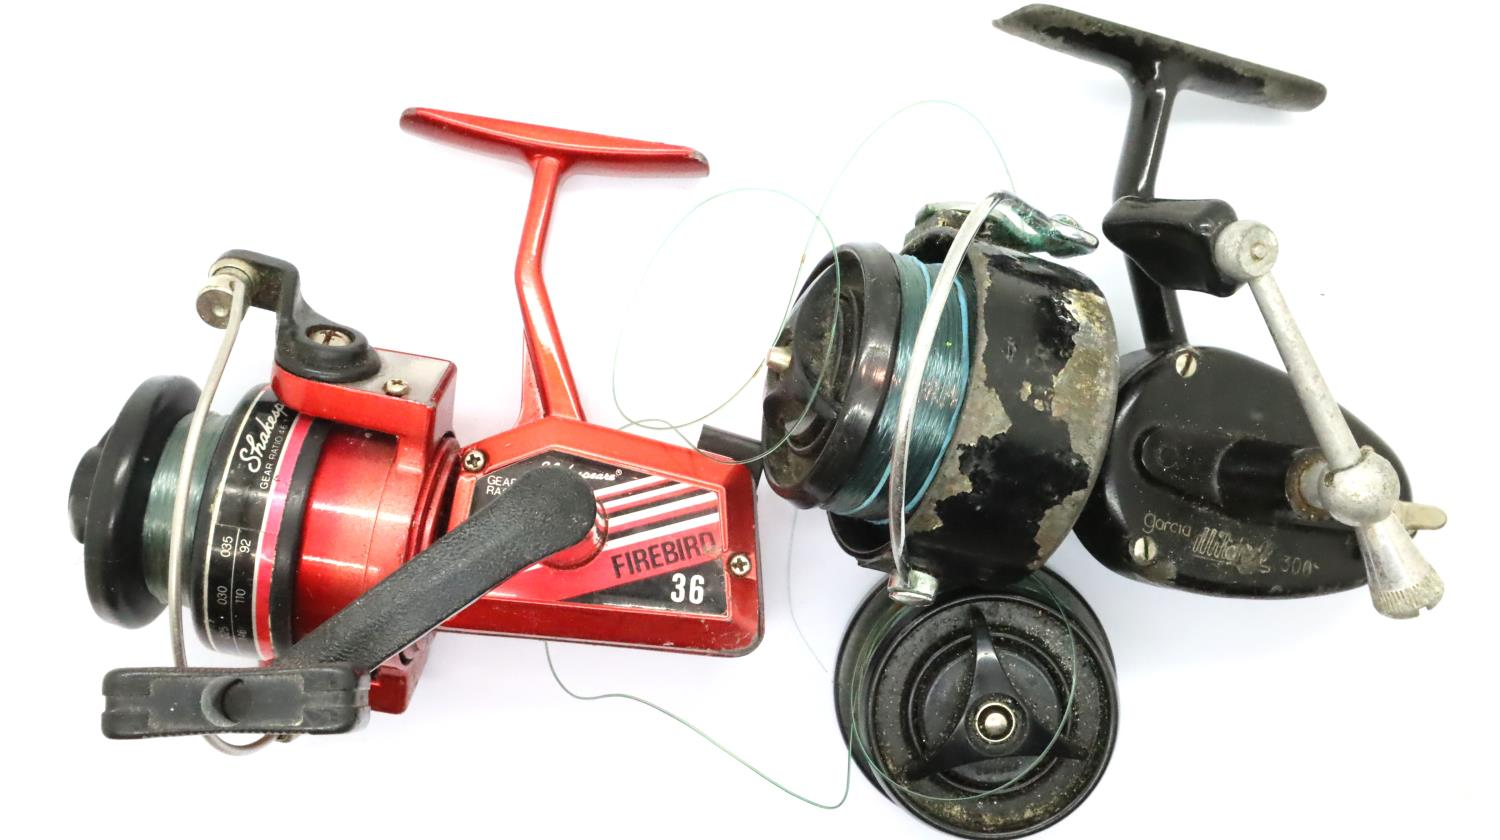 A Shakespeare Firebird 36 fishing reel and extras. P&P Group 2 (£18+VAT for the first lot and £3+VAT